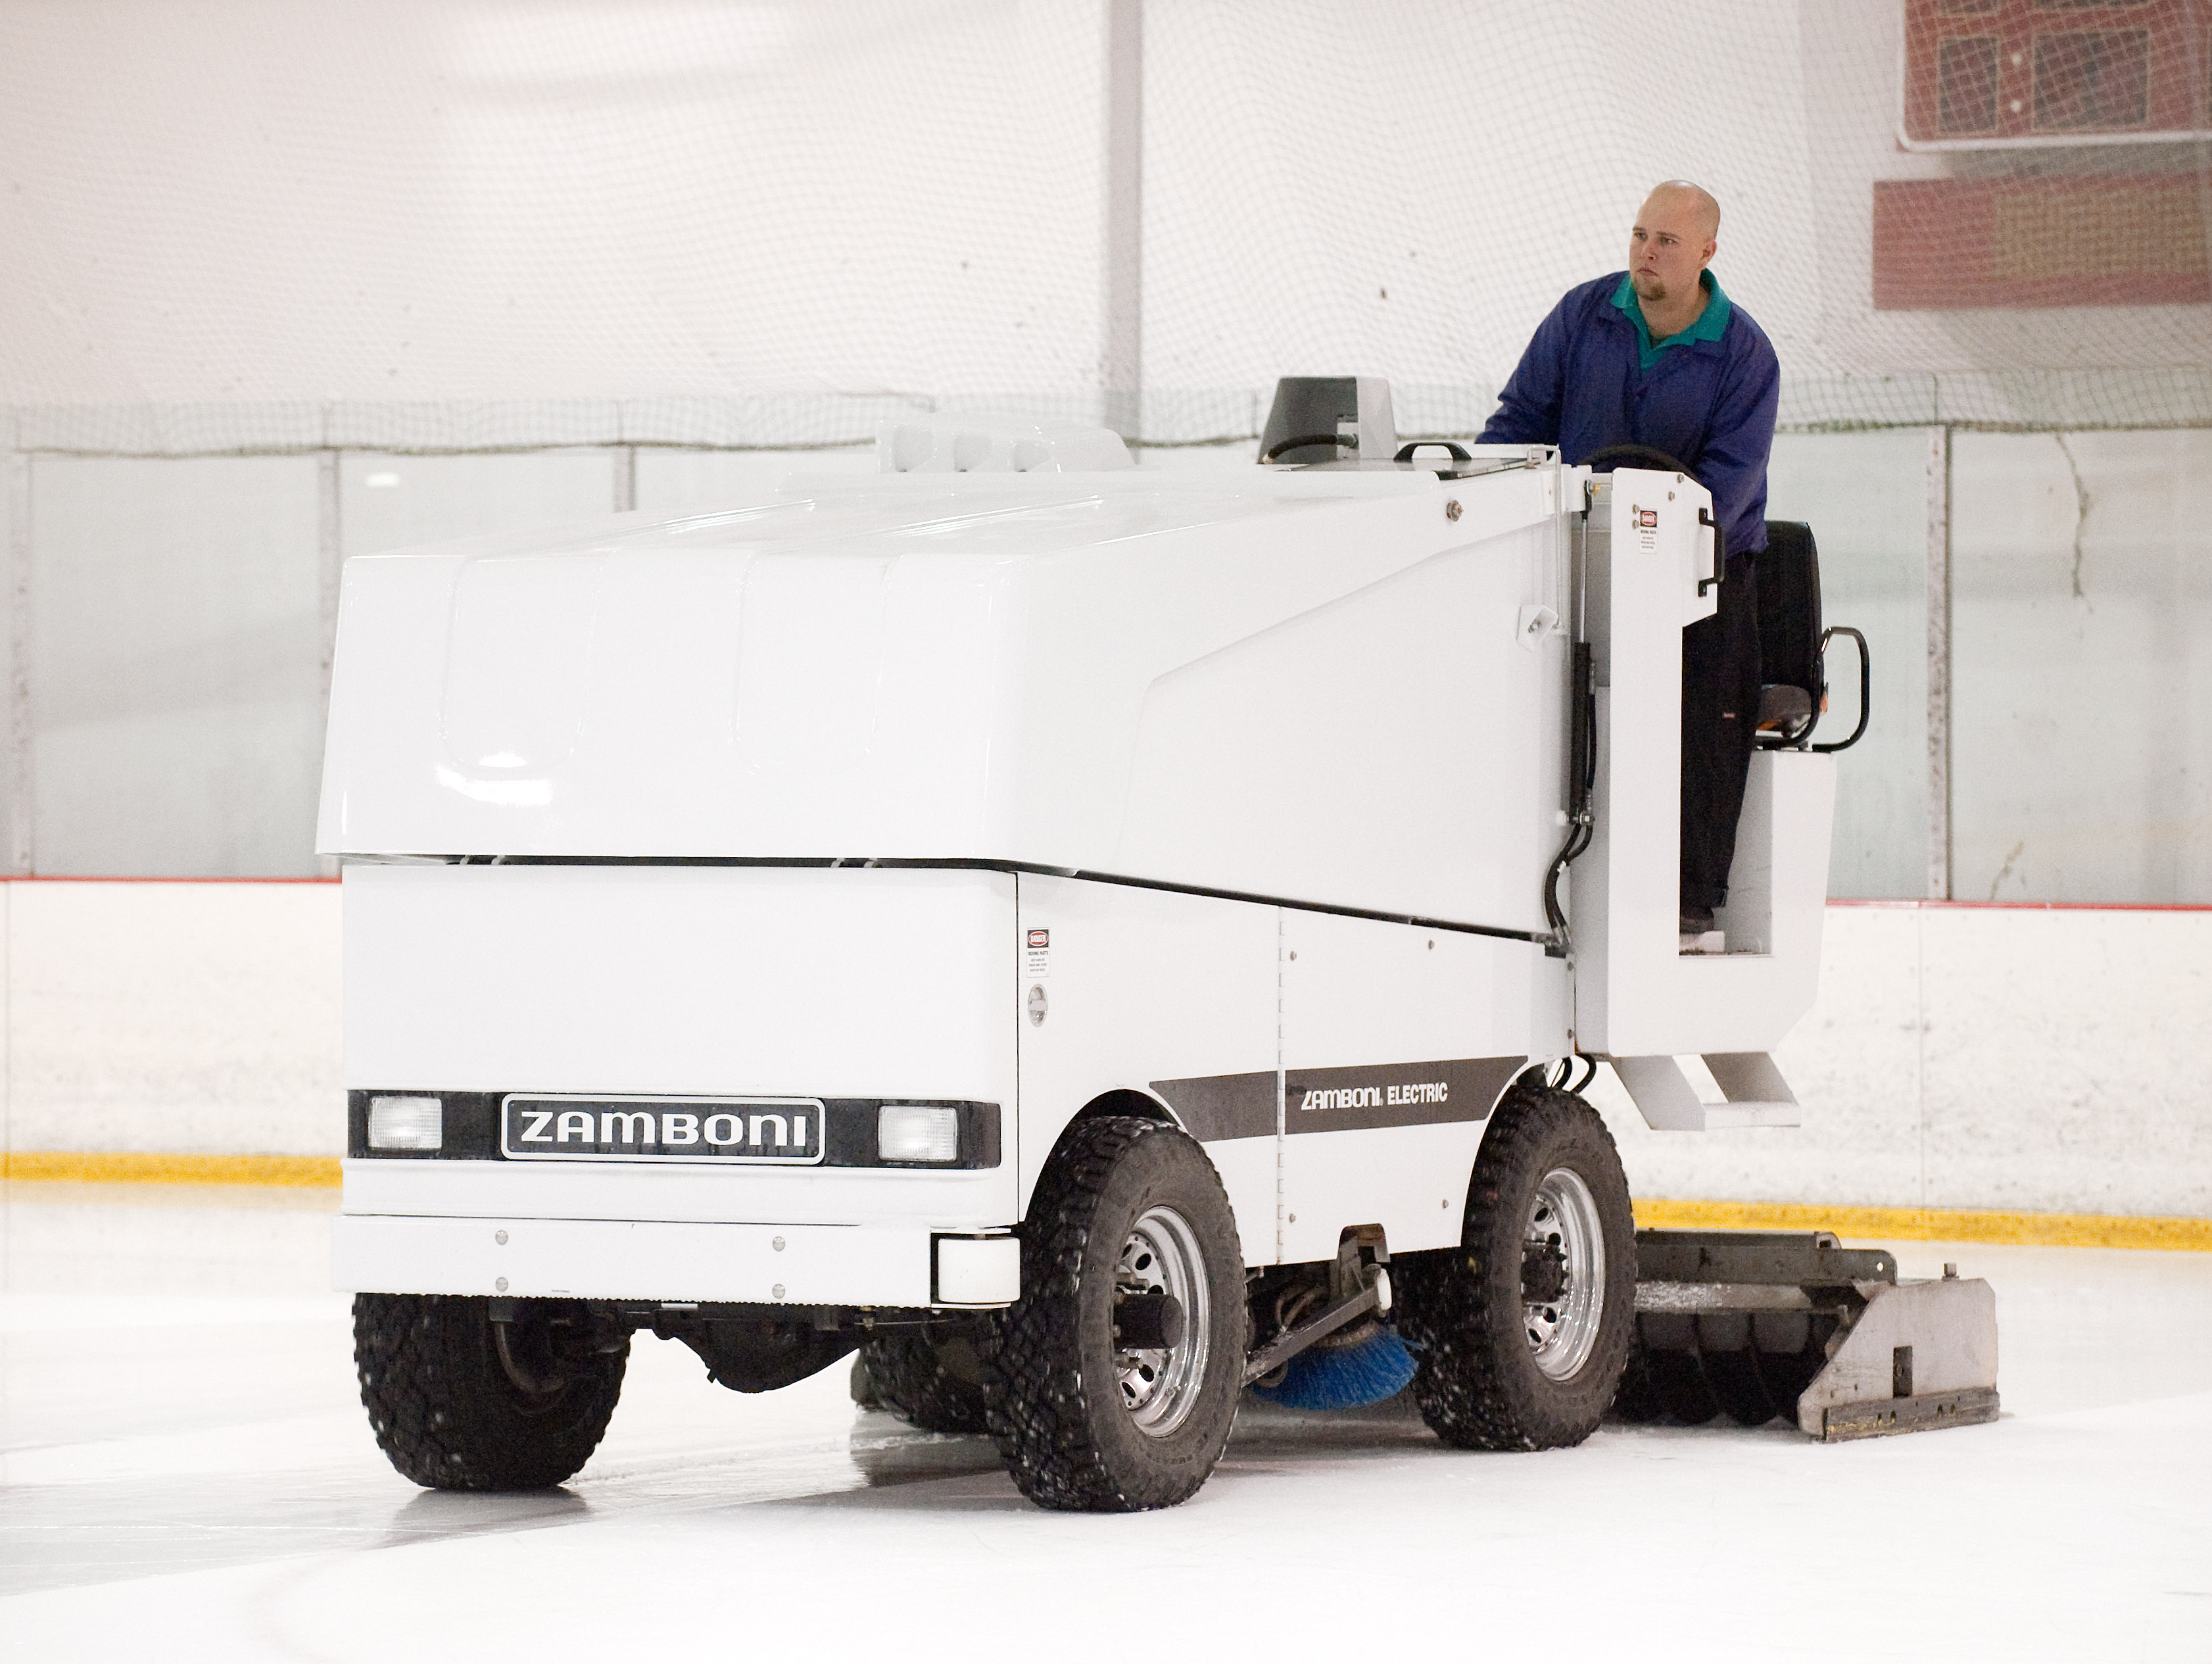 File:Zamboni ice resurfacing machine (4393262312).jpg - Wikimedia Commons